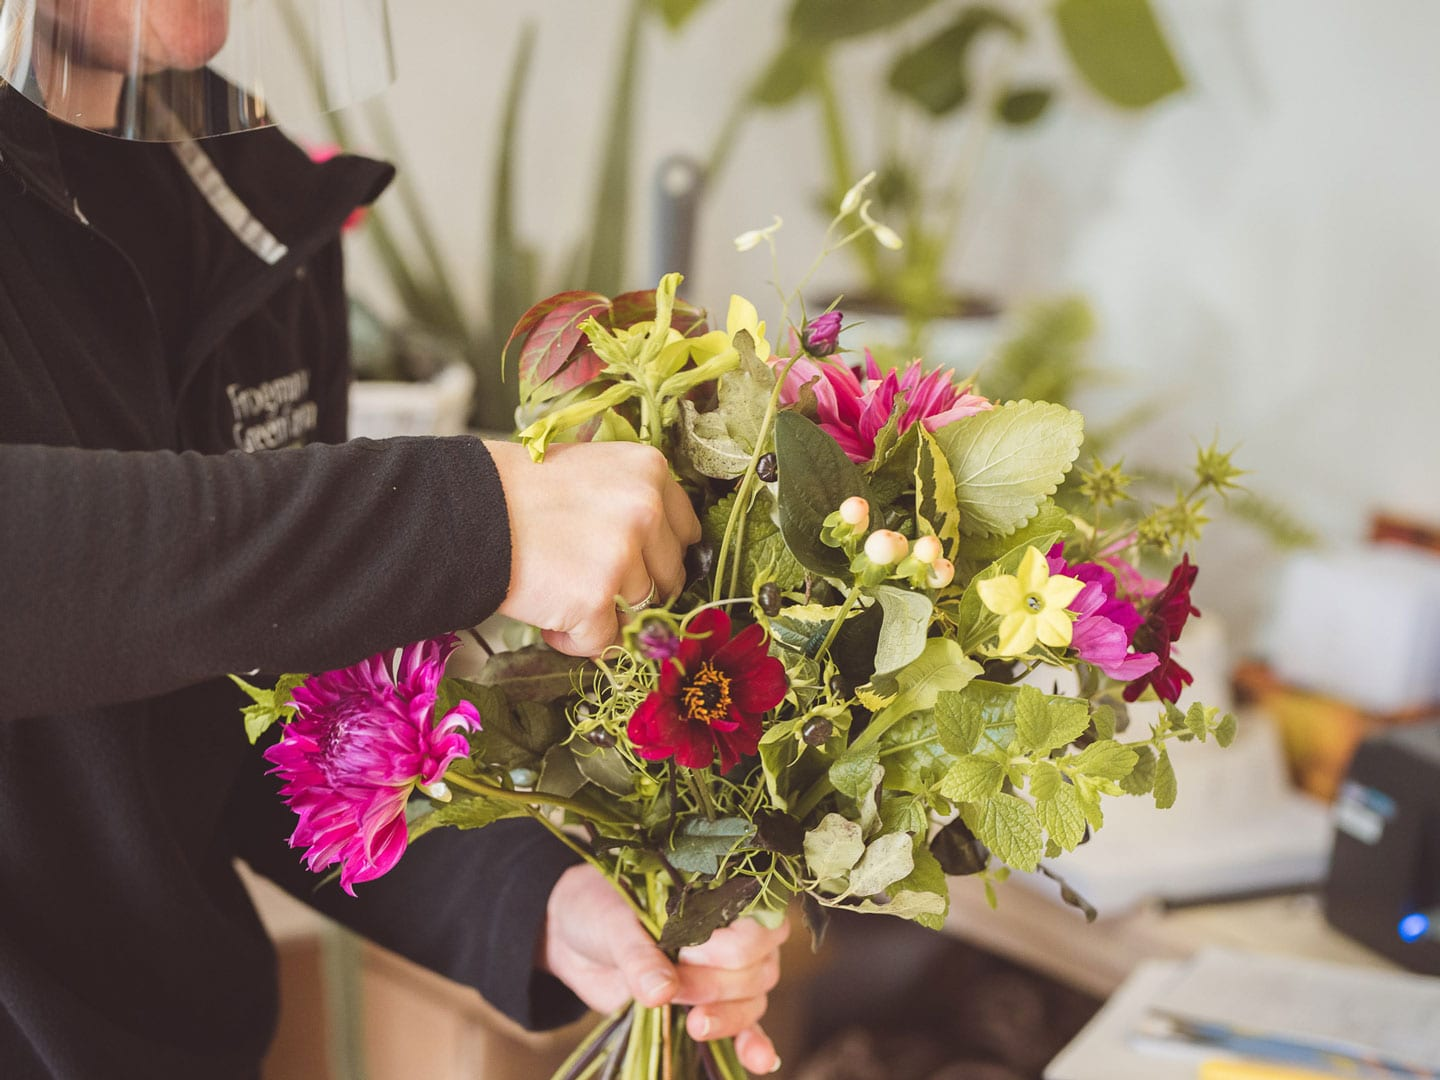 Flower shop click and collect somerset